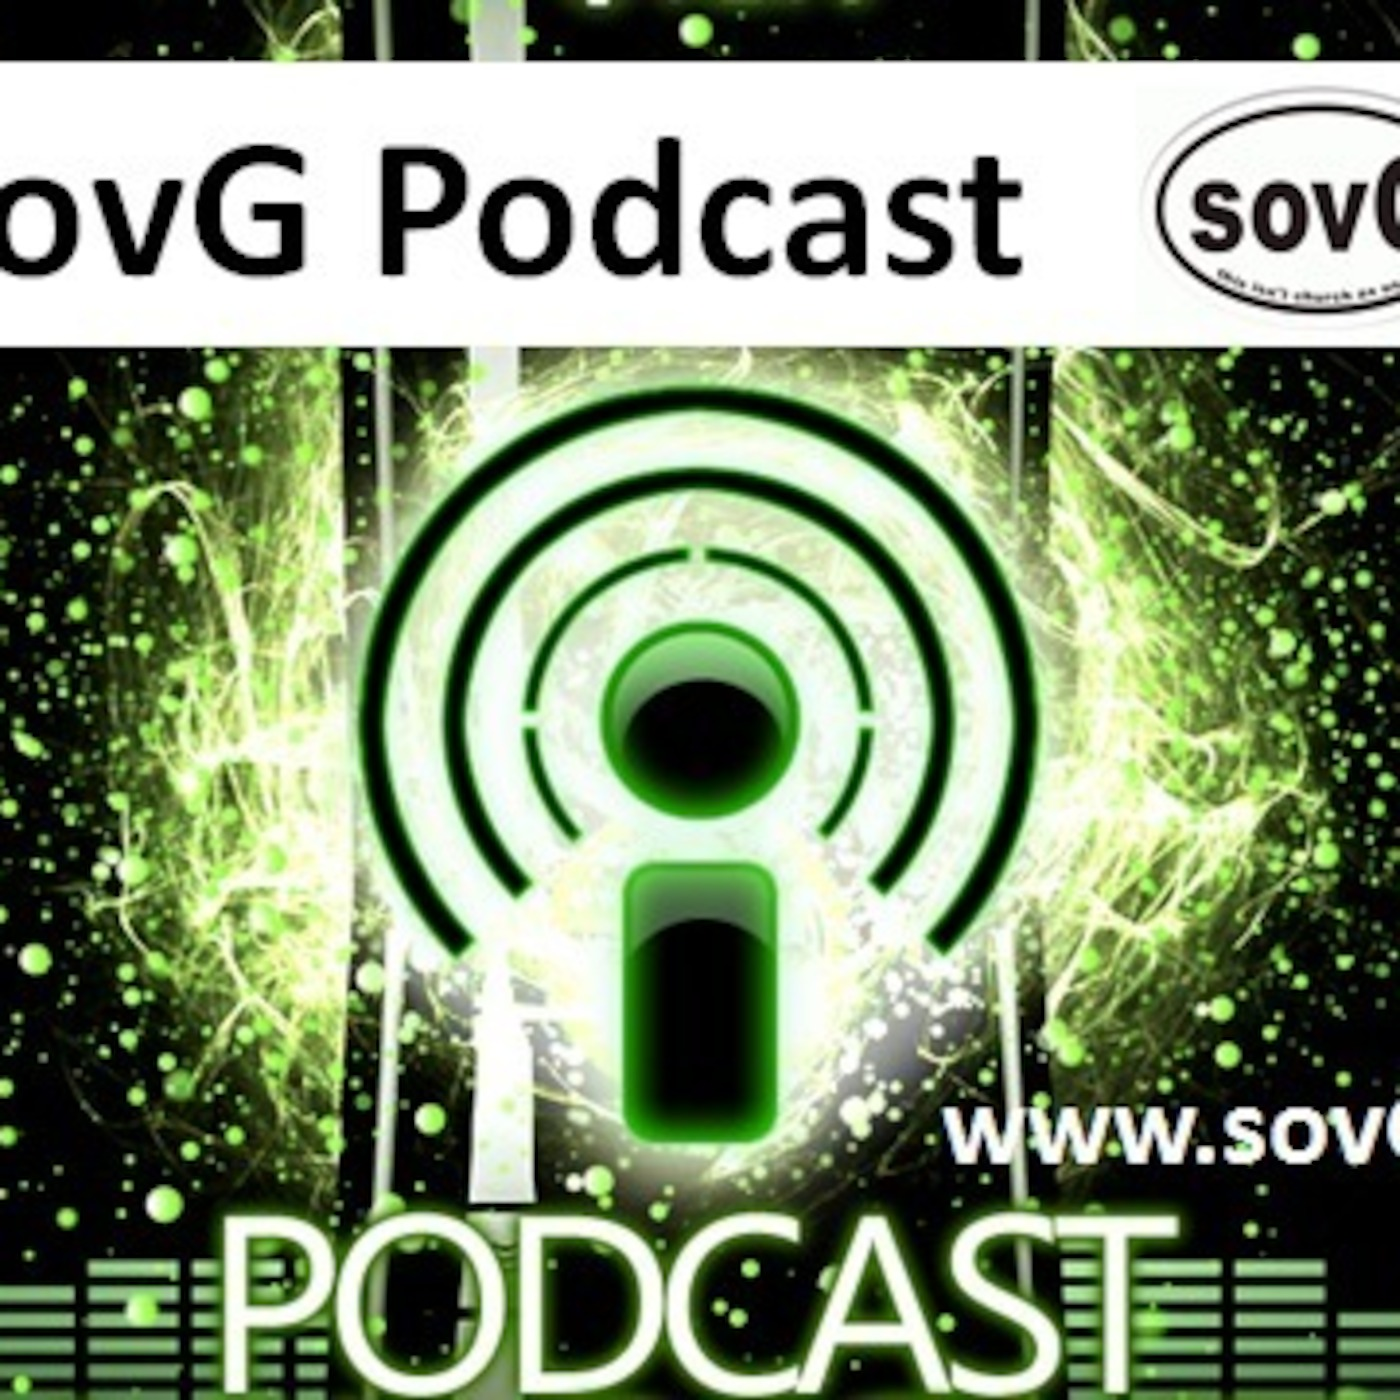 sovG Podcast